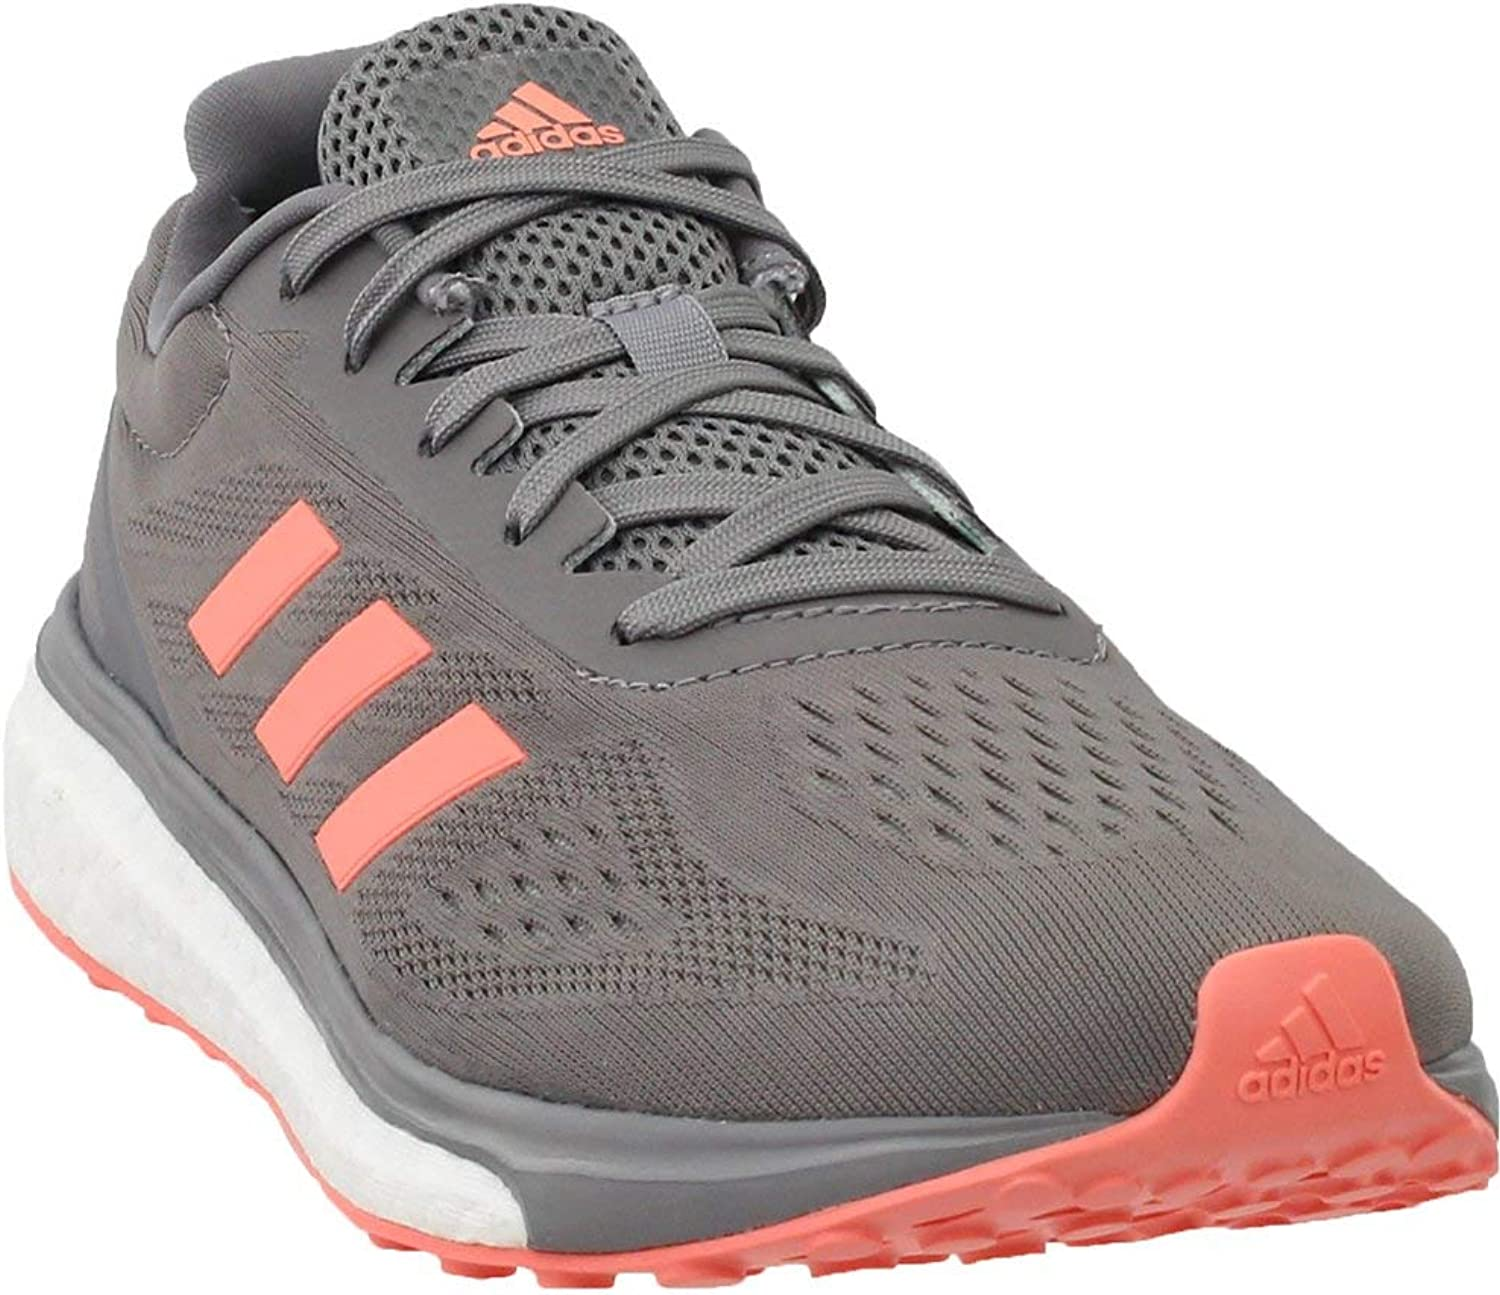 Adidas Response Boost LT Women's Running shoes